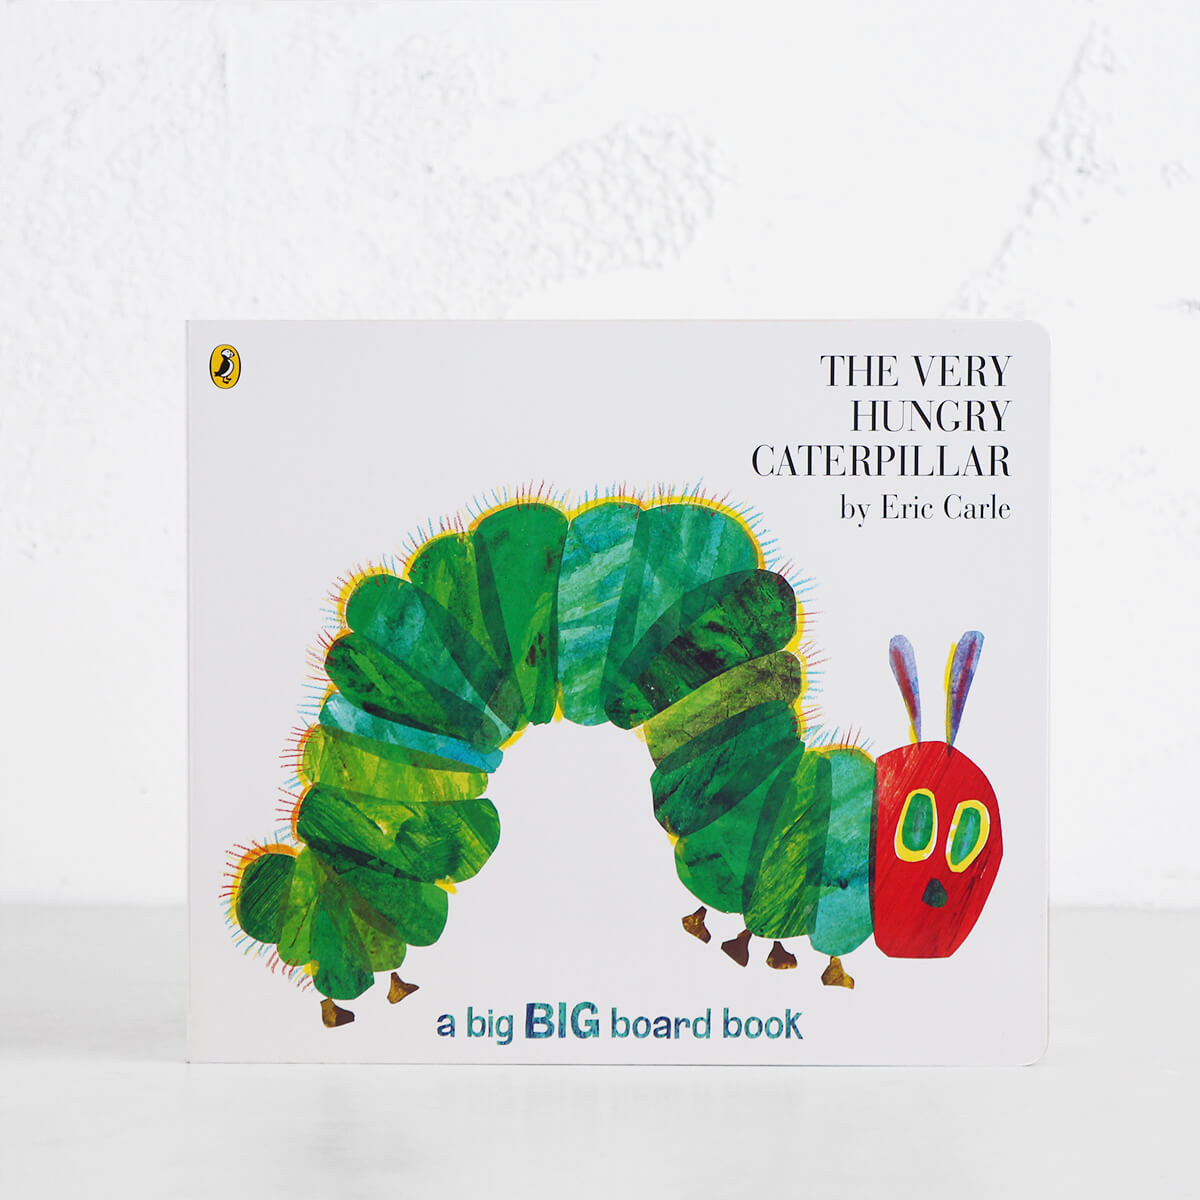 THE VERY HUNGRY CATERPILLAR  |  A BIG BOARD BOOK